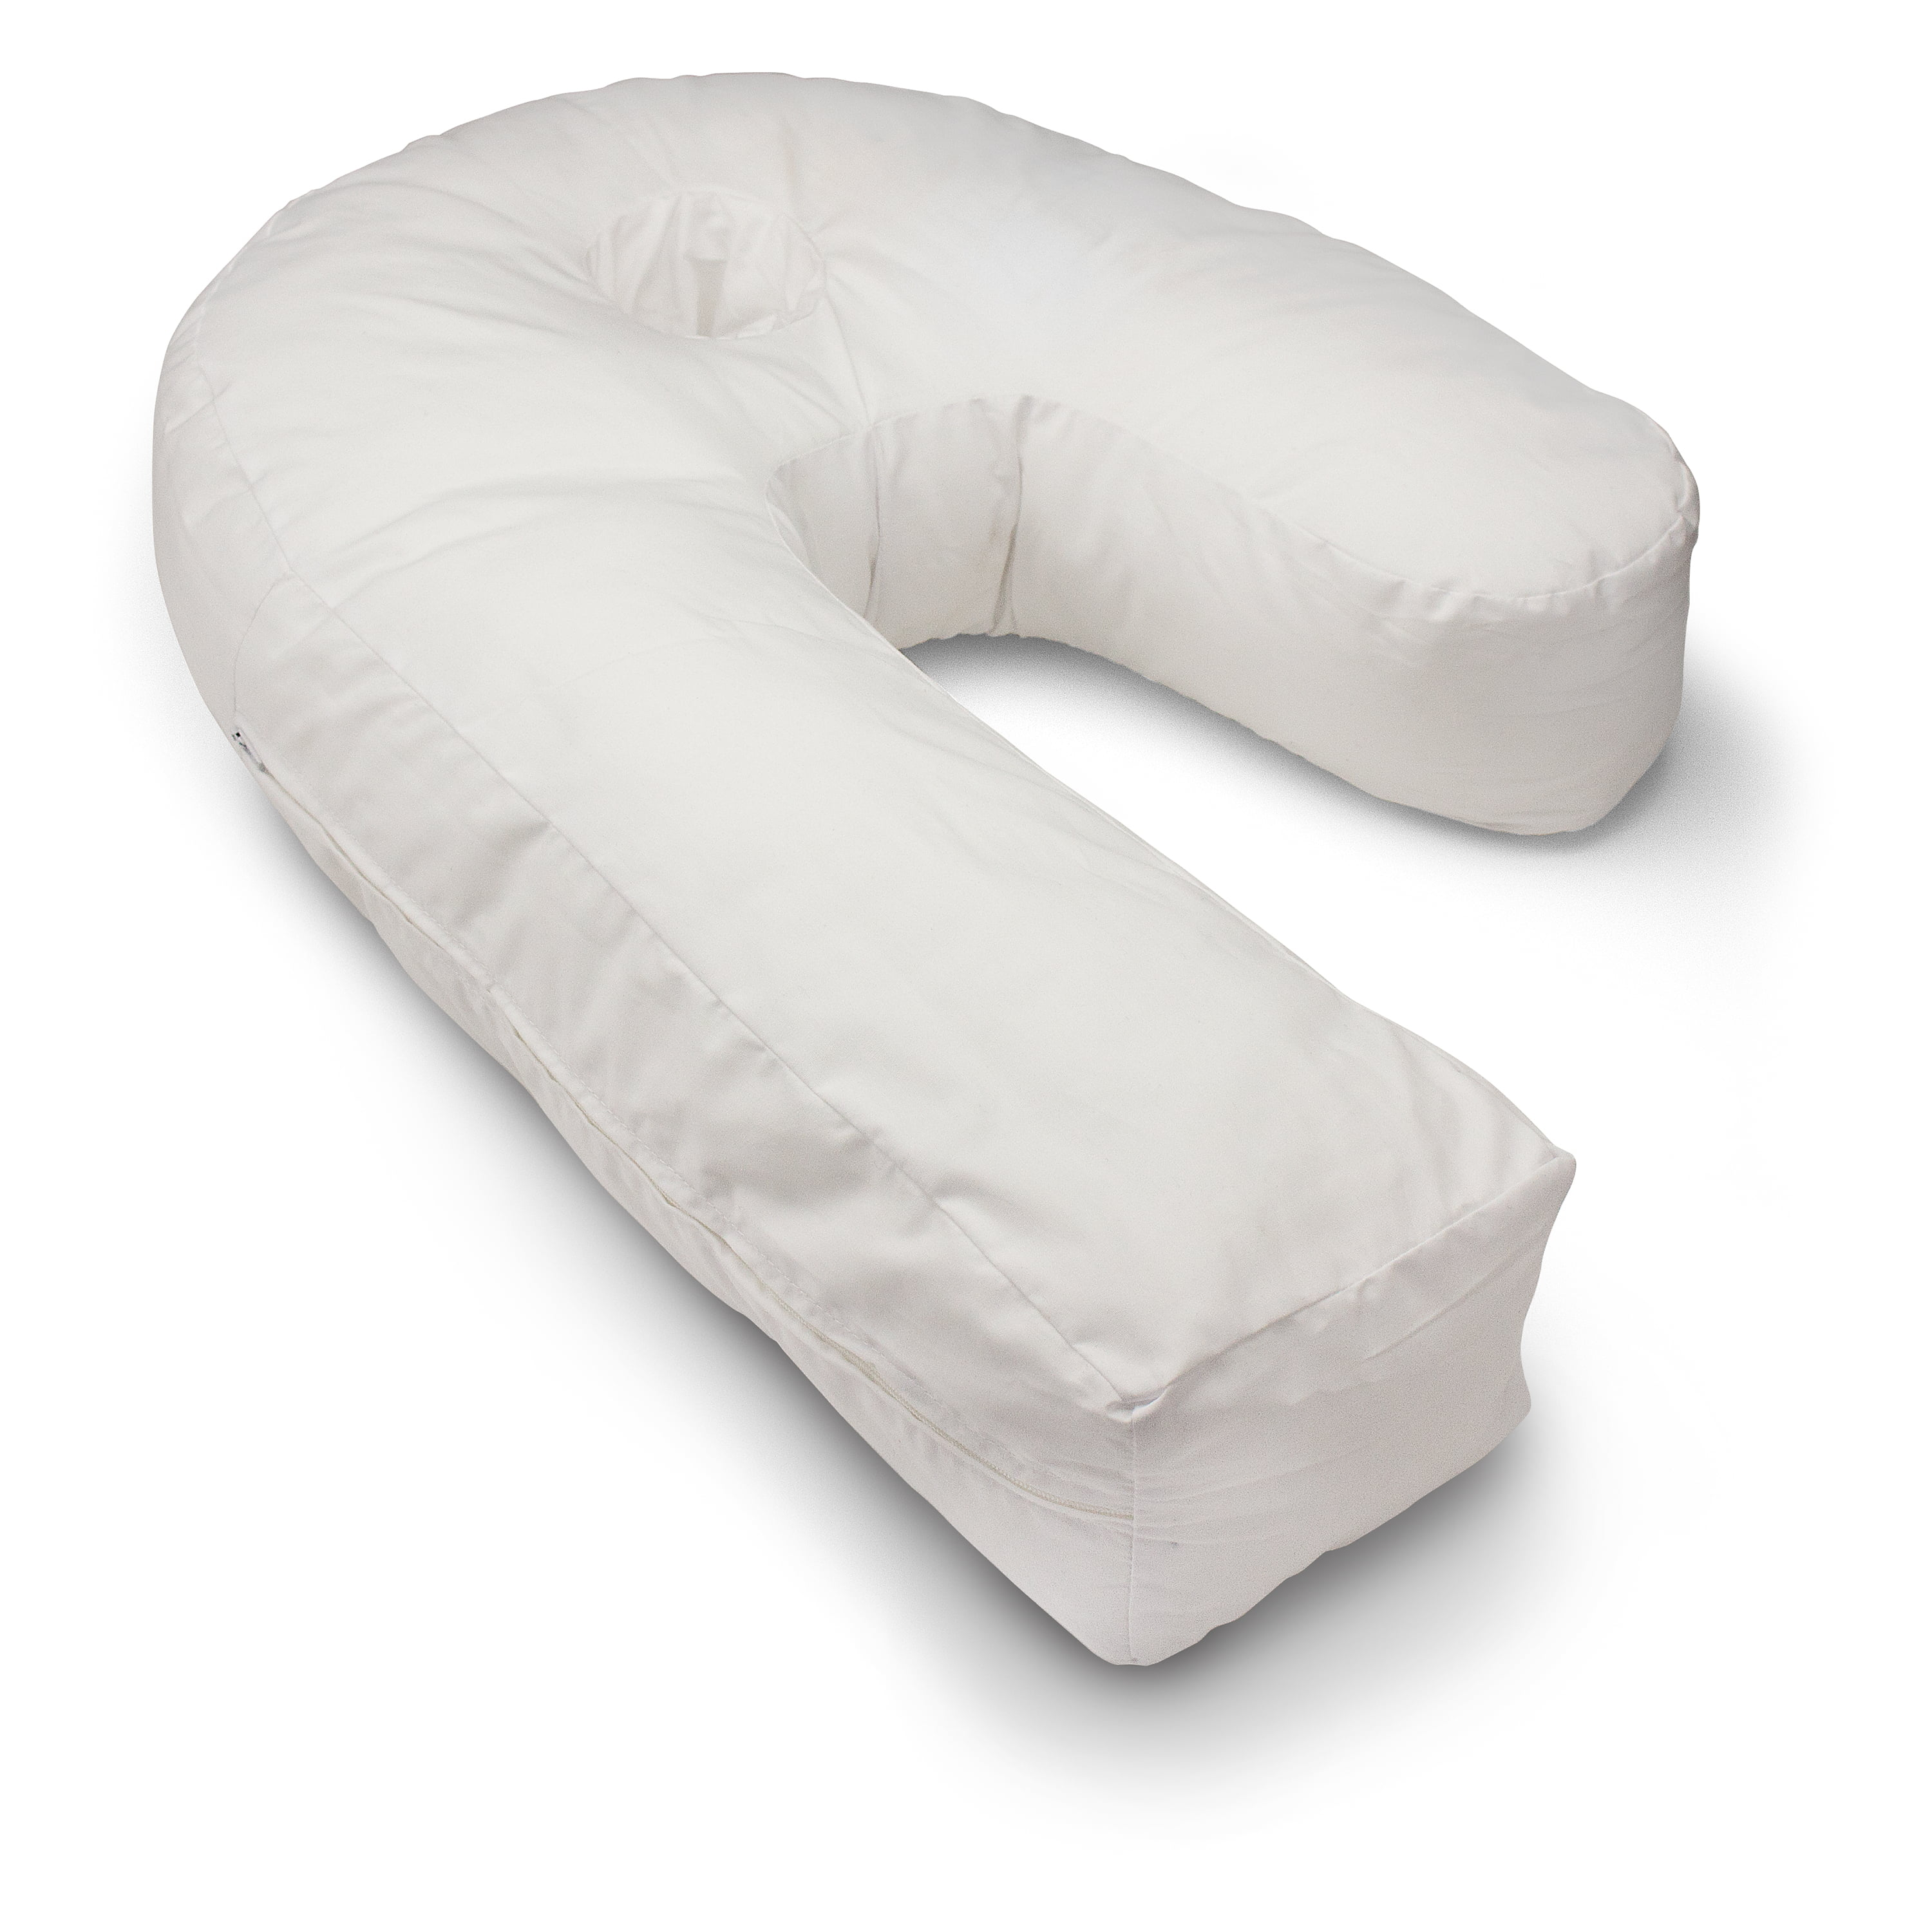 brookstone biosense 2 in 1 shoulder pillow for side sleepers